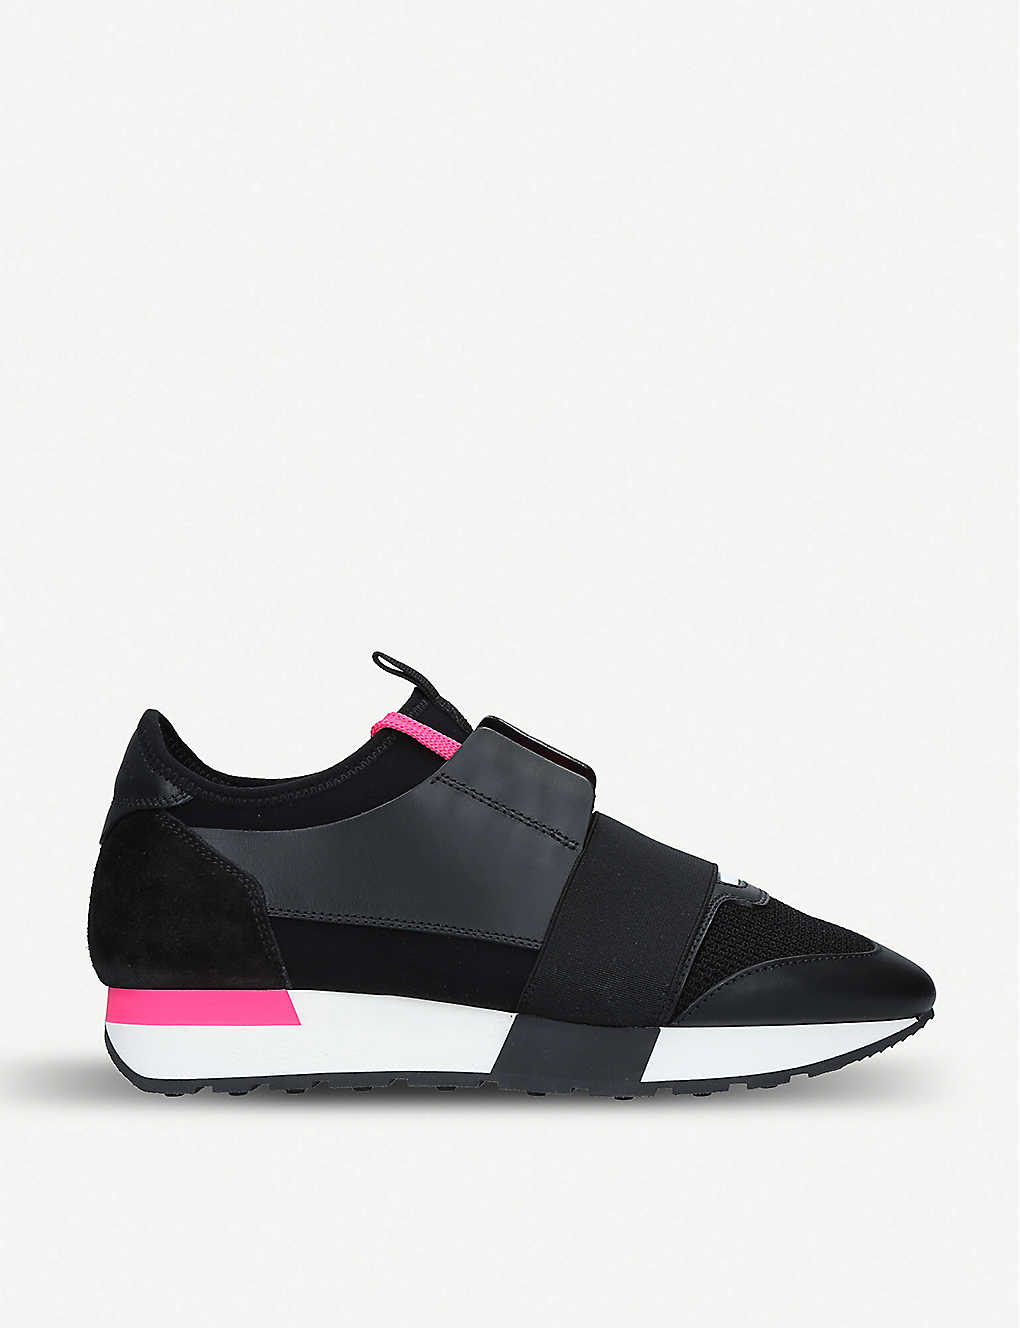 Balenciaga Shoes Race Runners leather, suede and mesh trainers